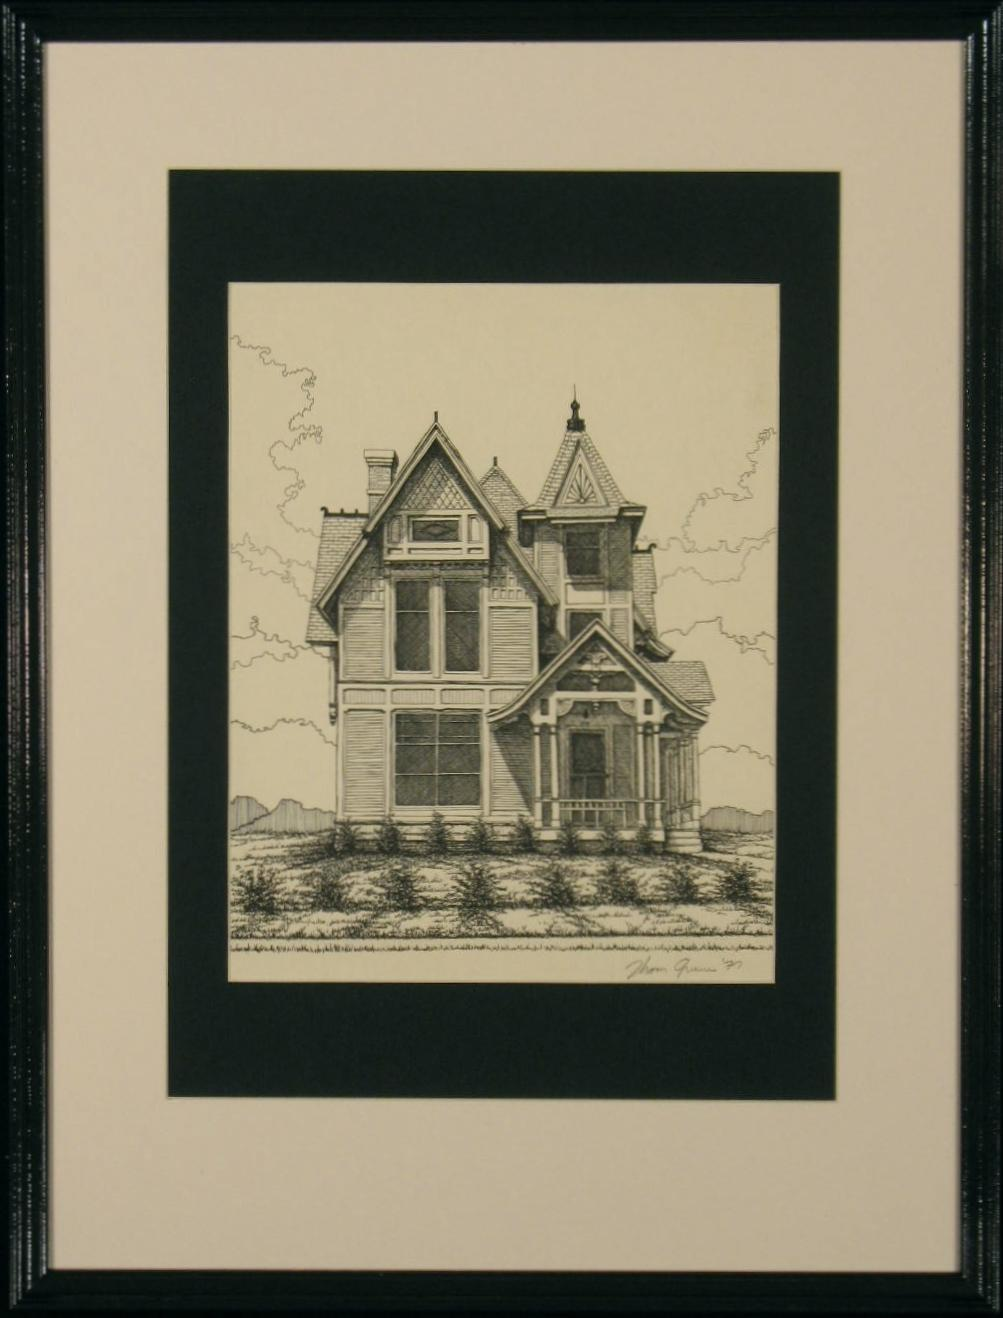 Thom Greene Pencil Signed Print: Victorian Turret House